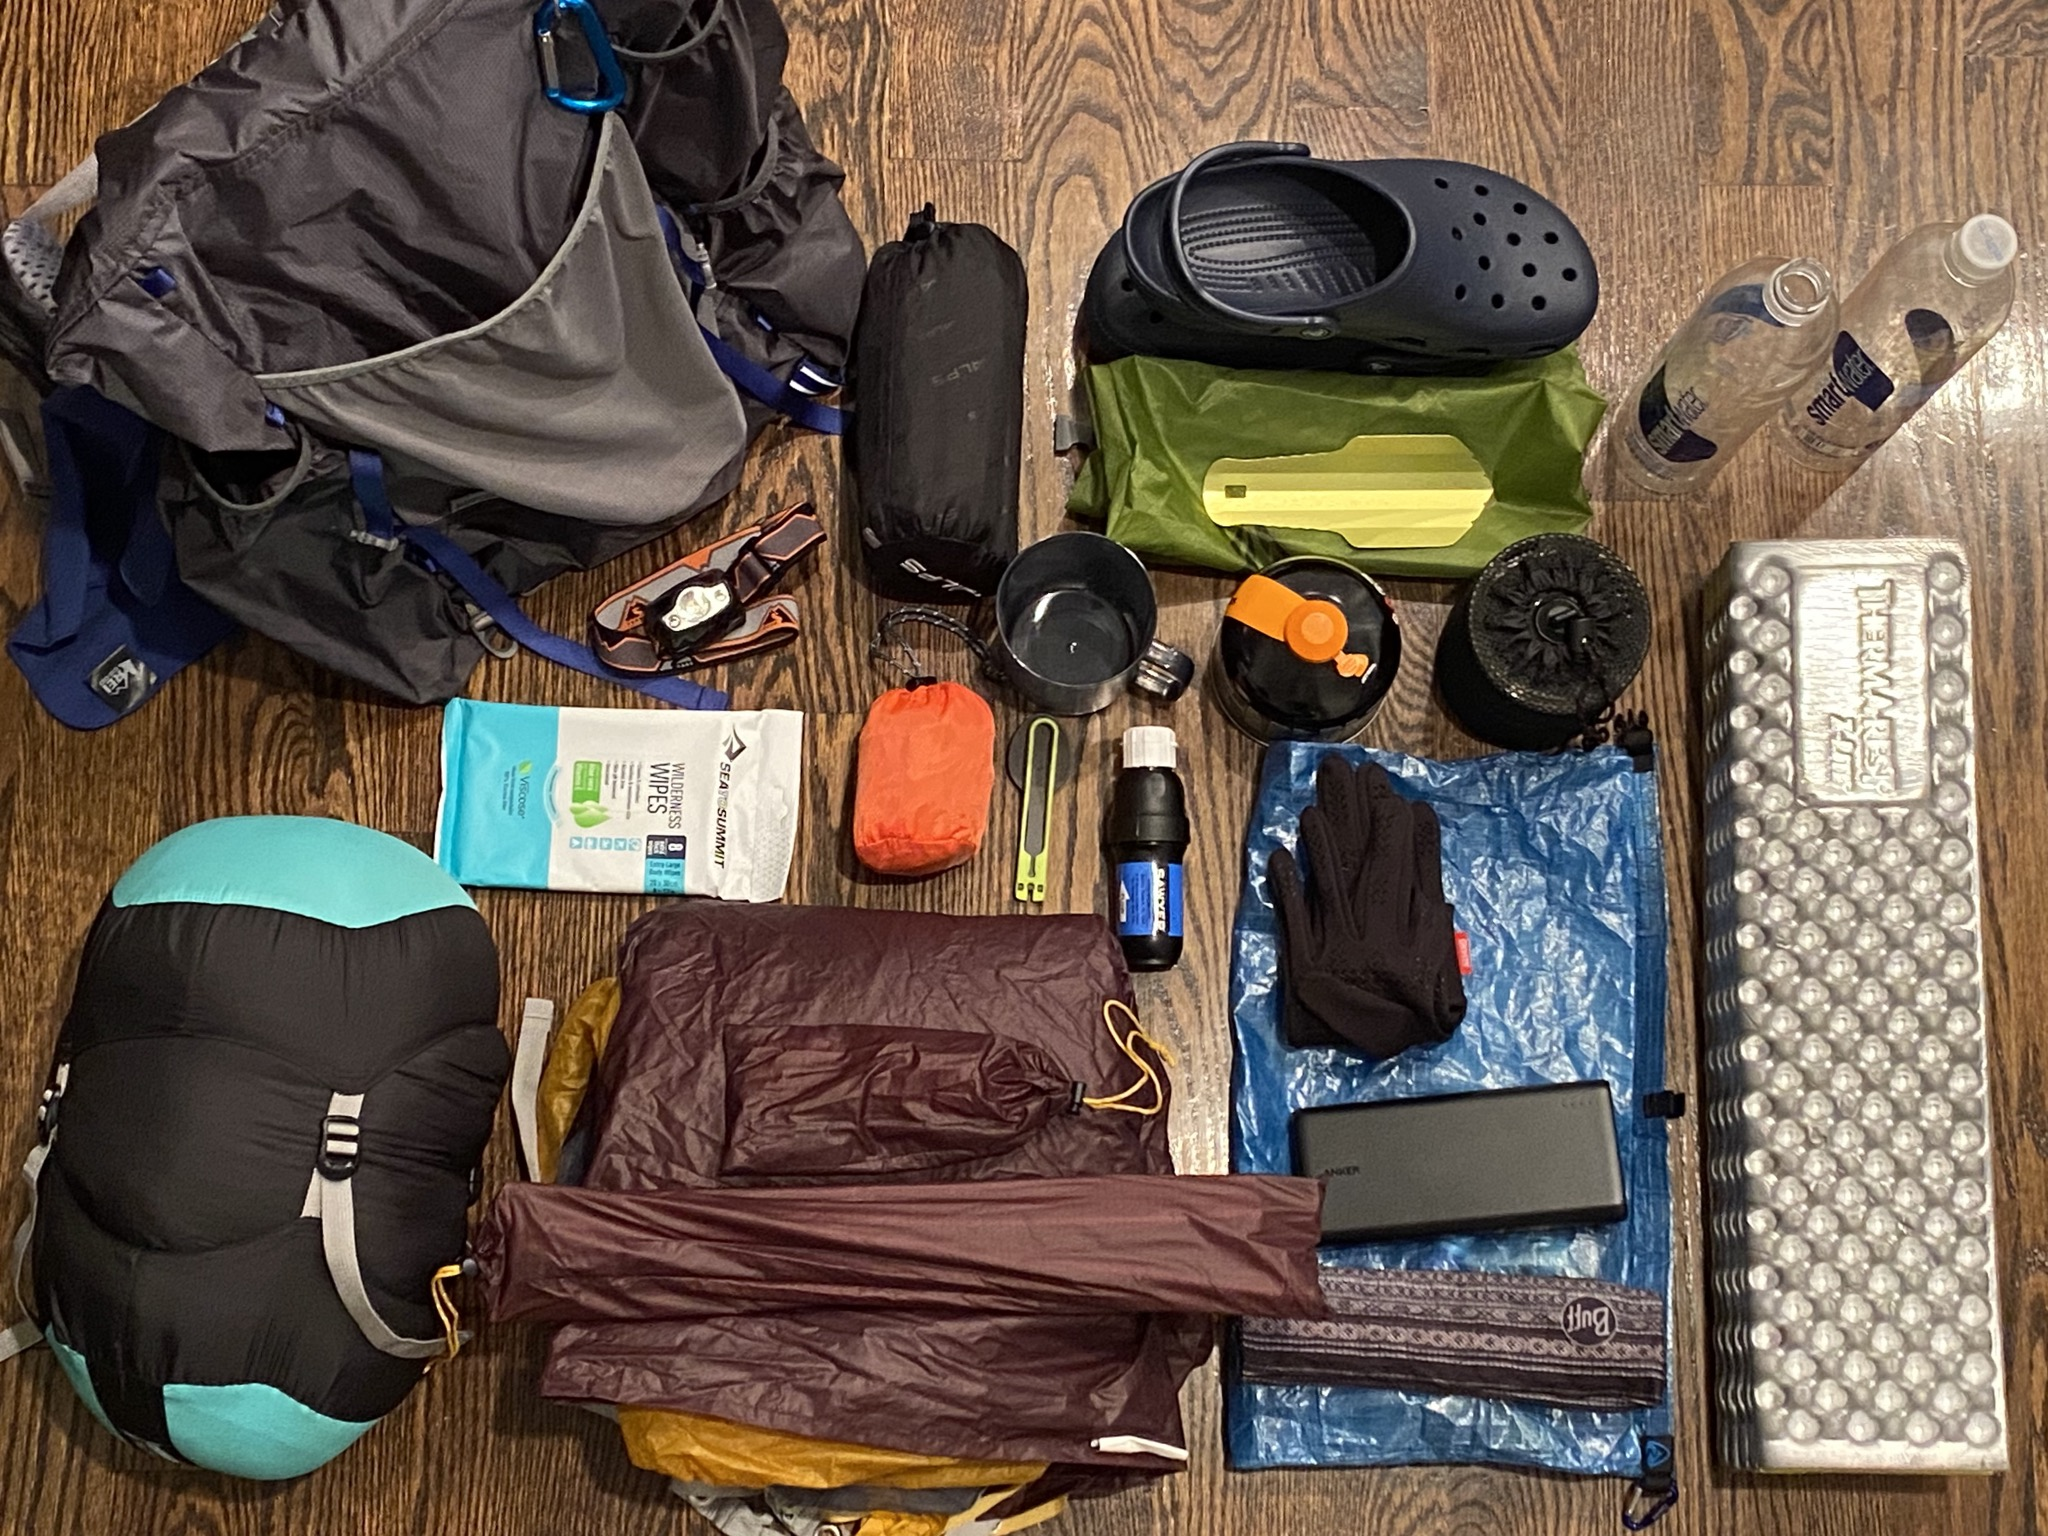 Backpacking gear, assorted, arranged on a wood floor.